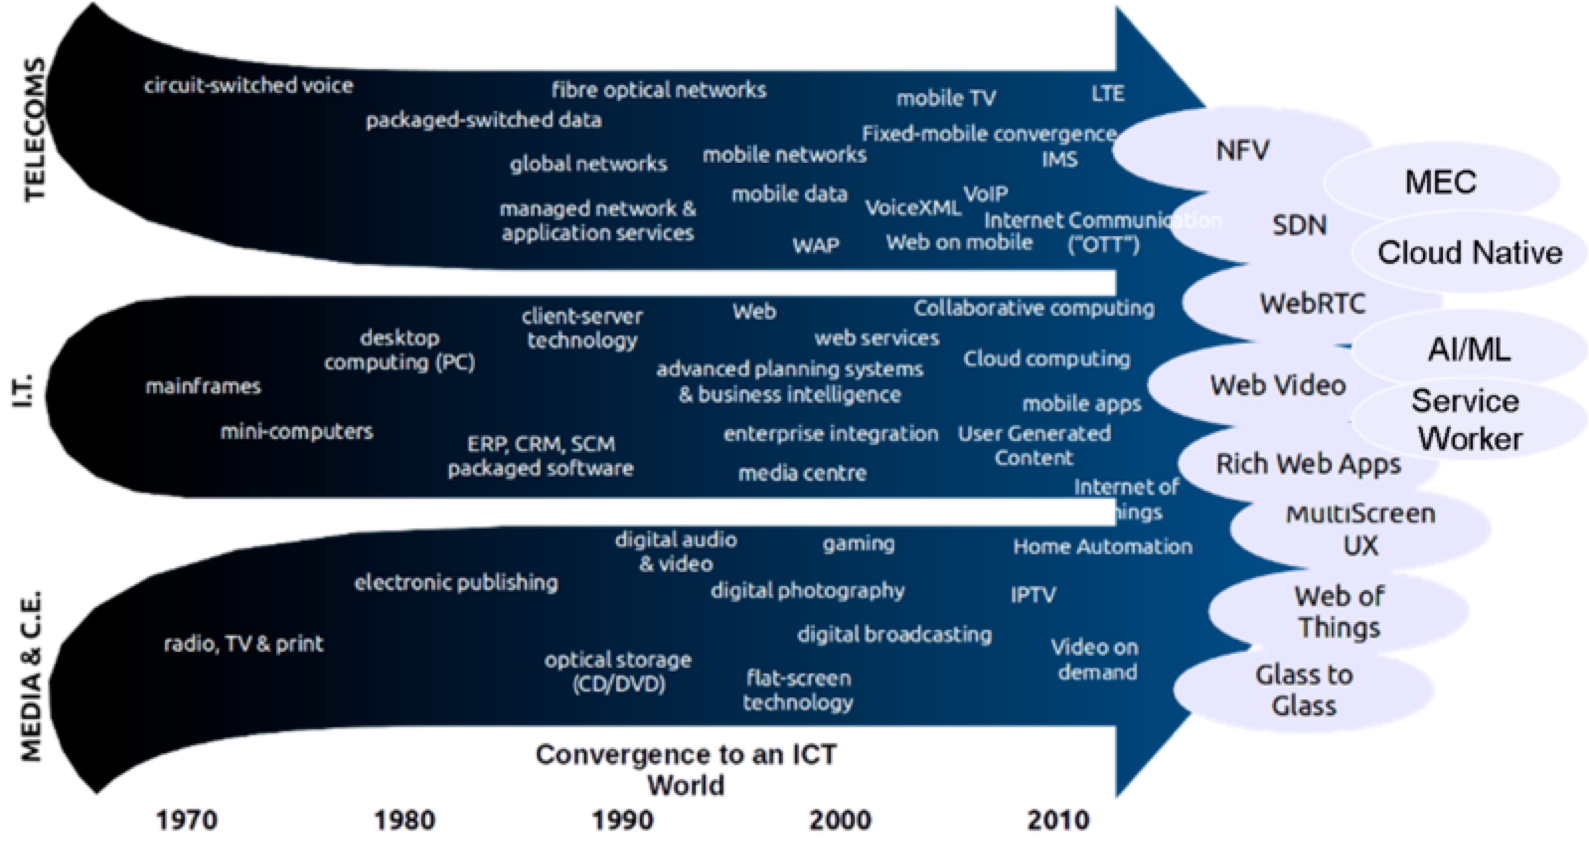 telecommunications diagram showing convergence to an ICT world